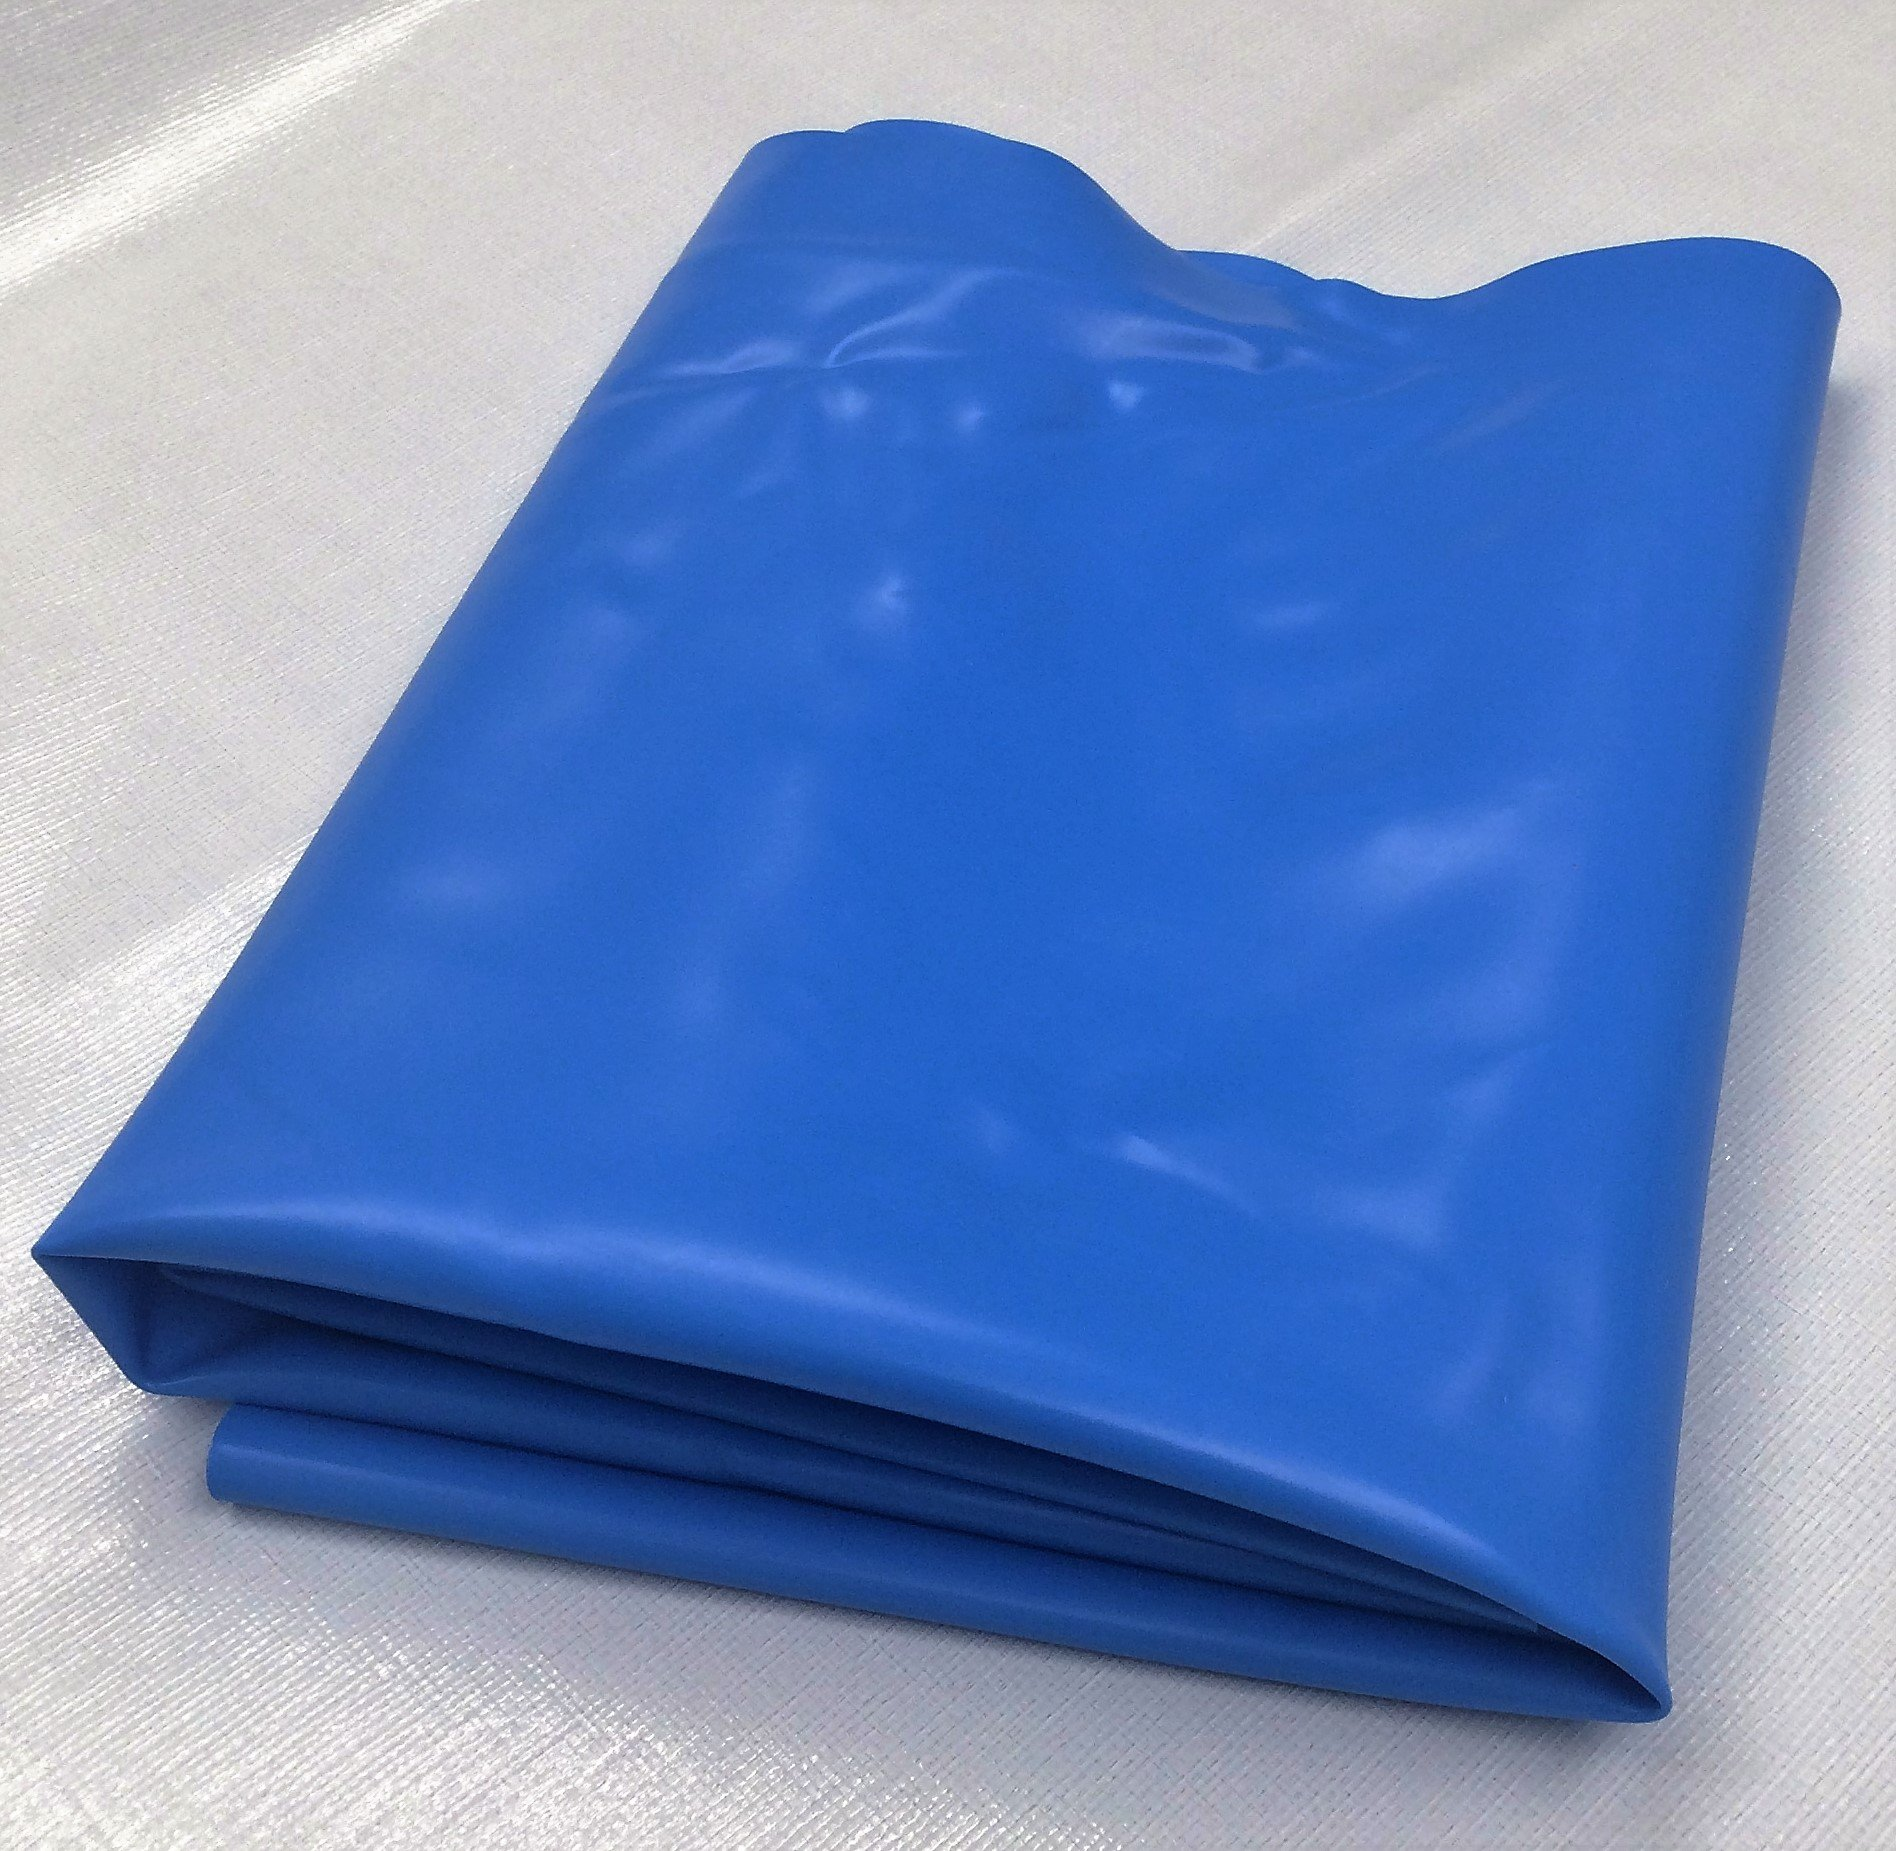 Blue Pond Liner - 10' x 12' in 30-mil Blue PVC for Koi Ponds, Streams, Fountains and Water Gardens by USA Pond Products